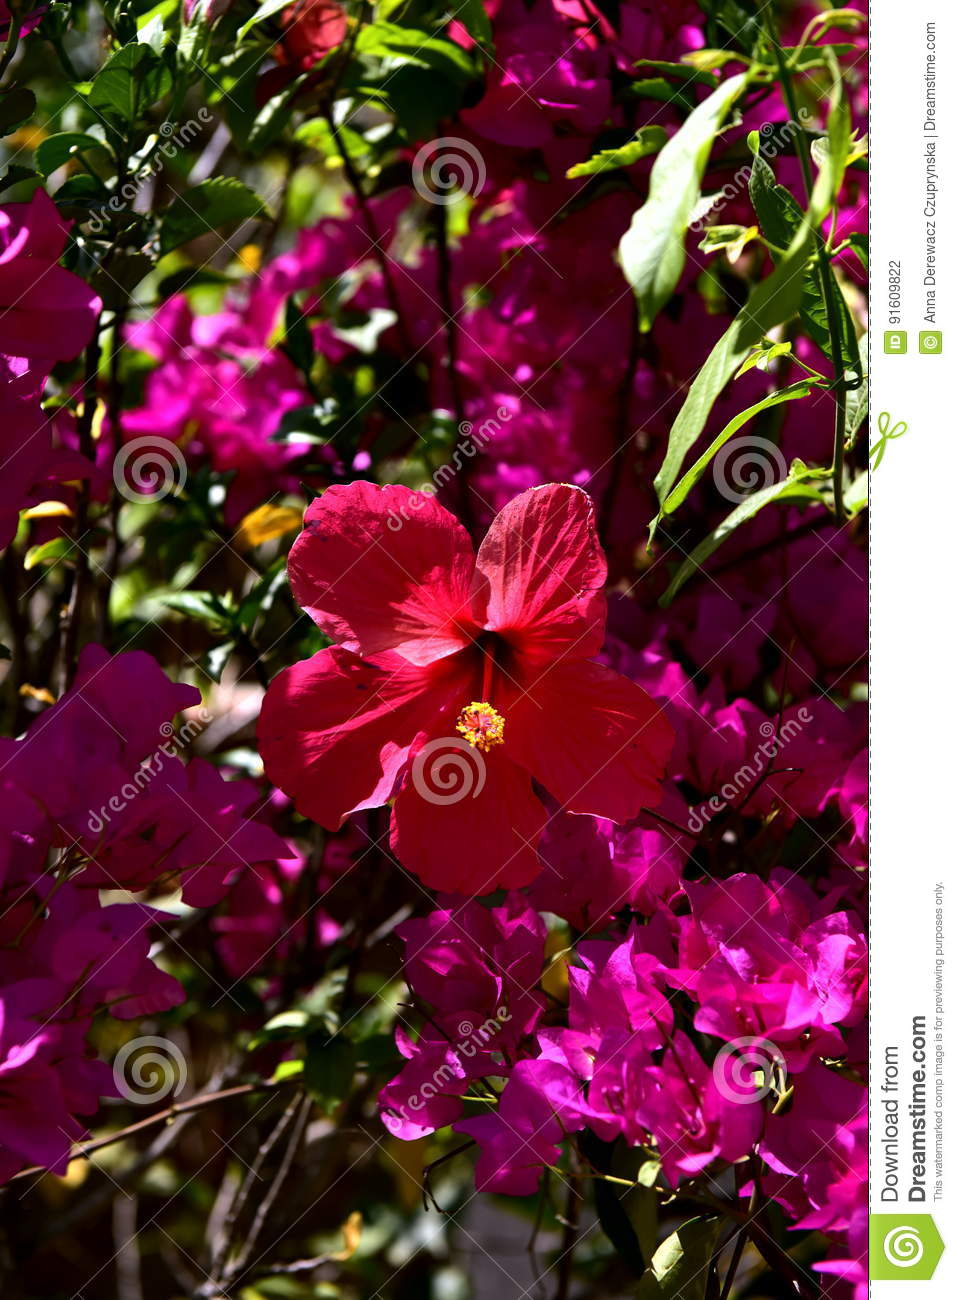 India Flowers In The Garden Stock Photo Image Of Just Poverty